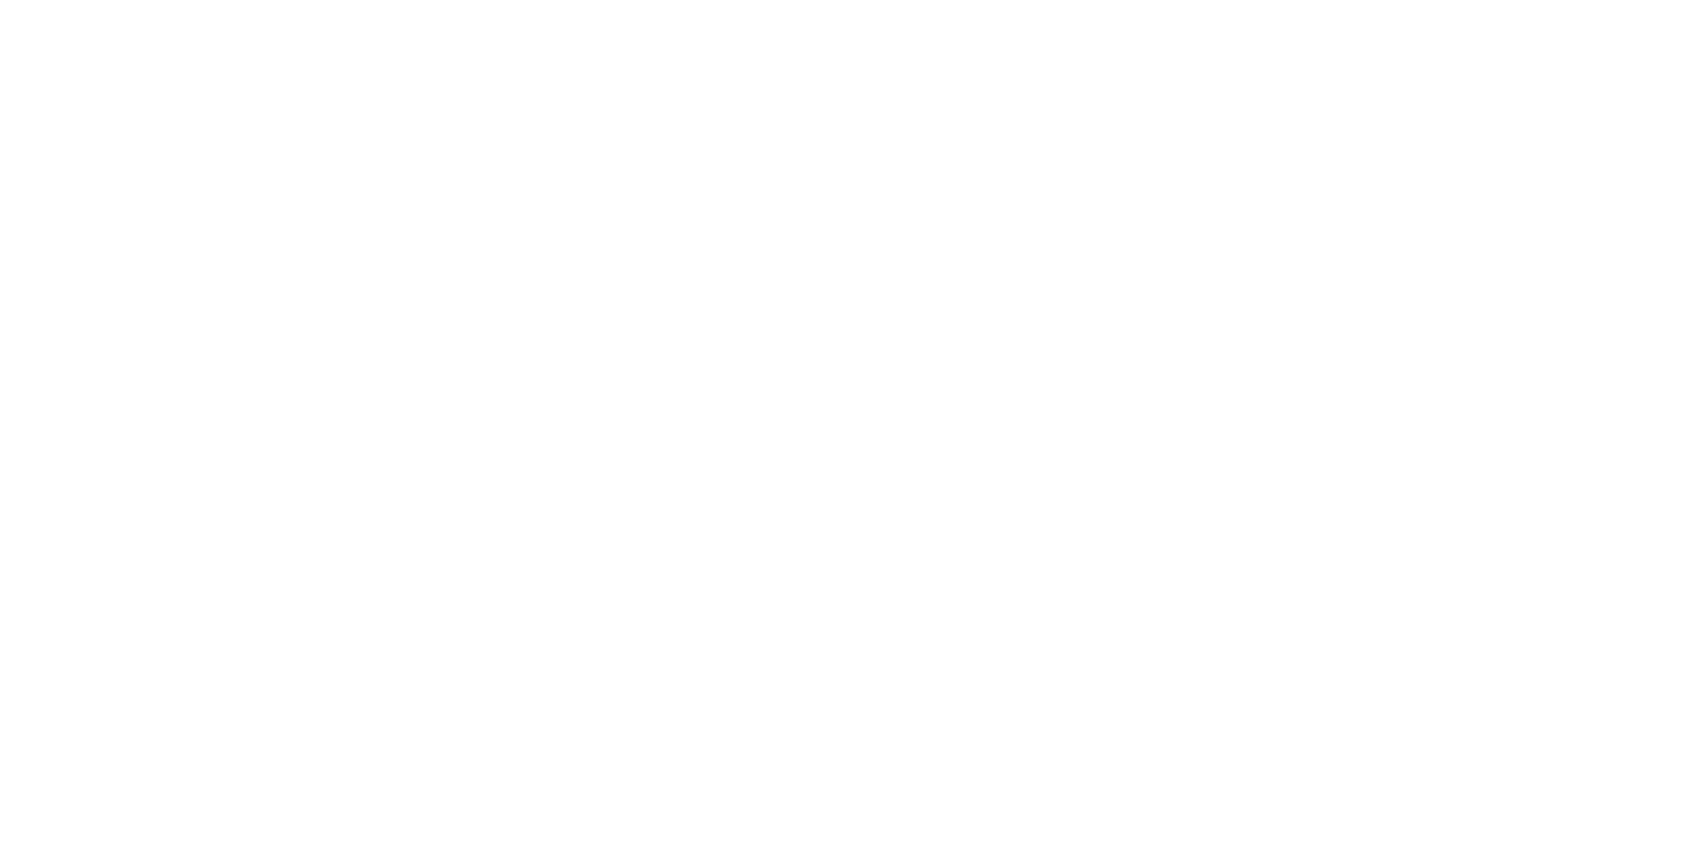 Julie Goodnight Shop